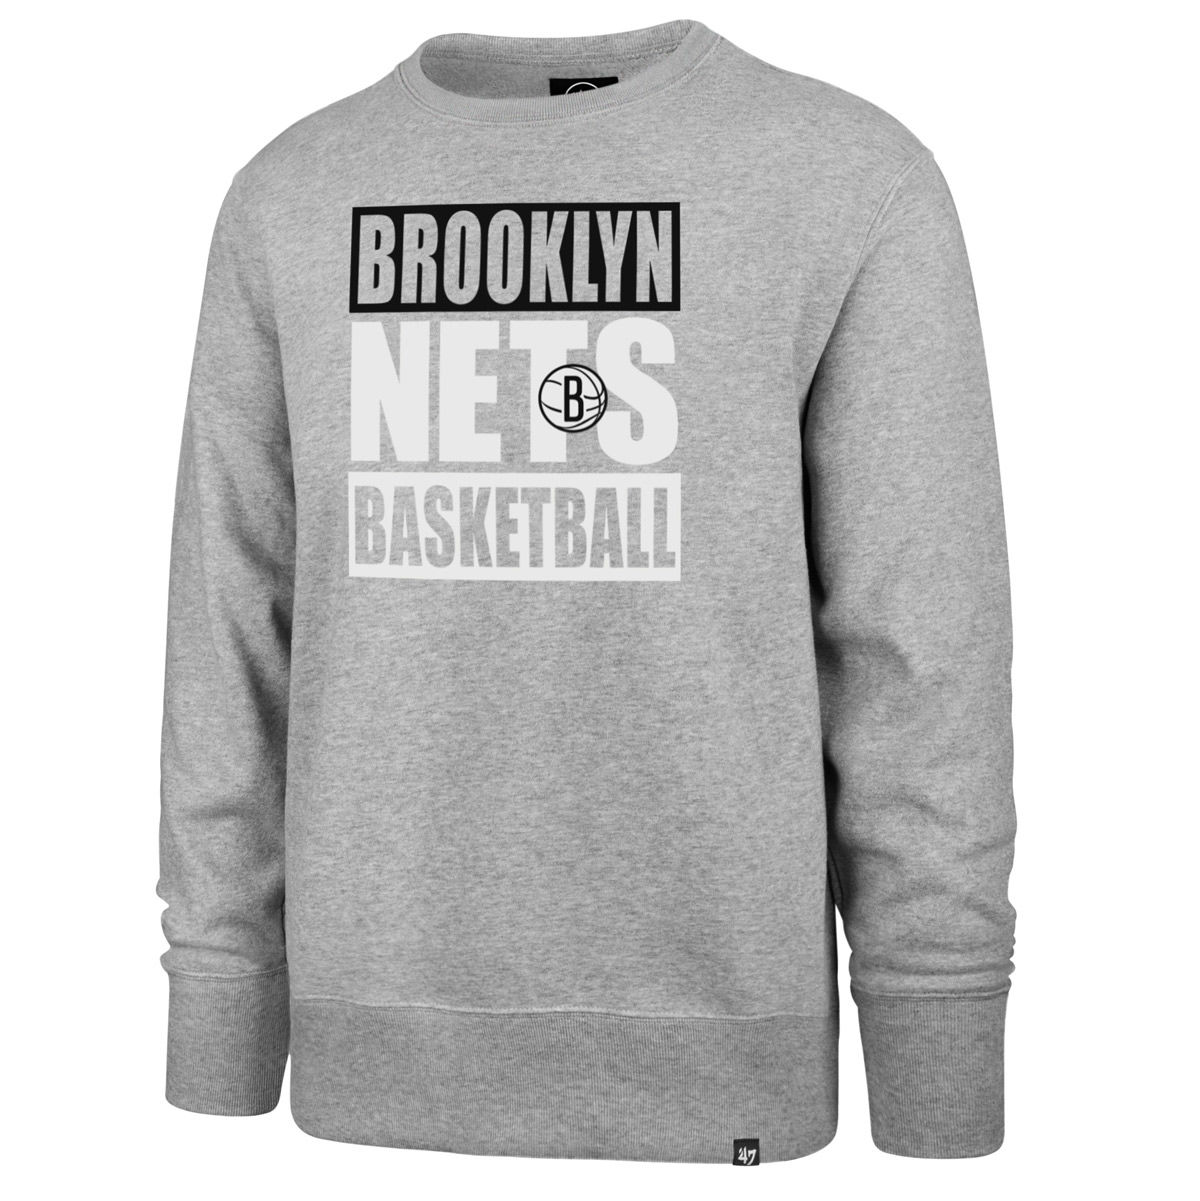 Brooklyn Nets Adult Block Crewneck Sweatshirt